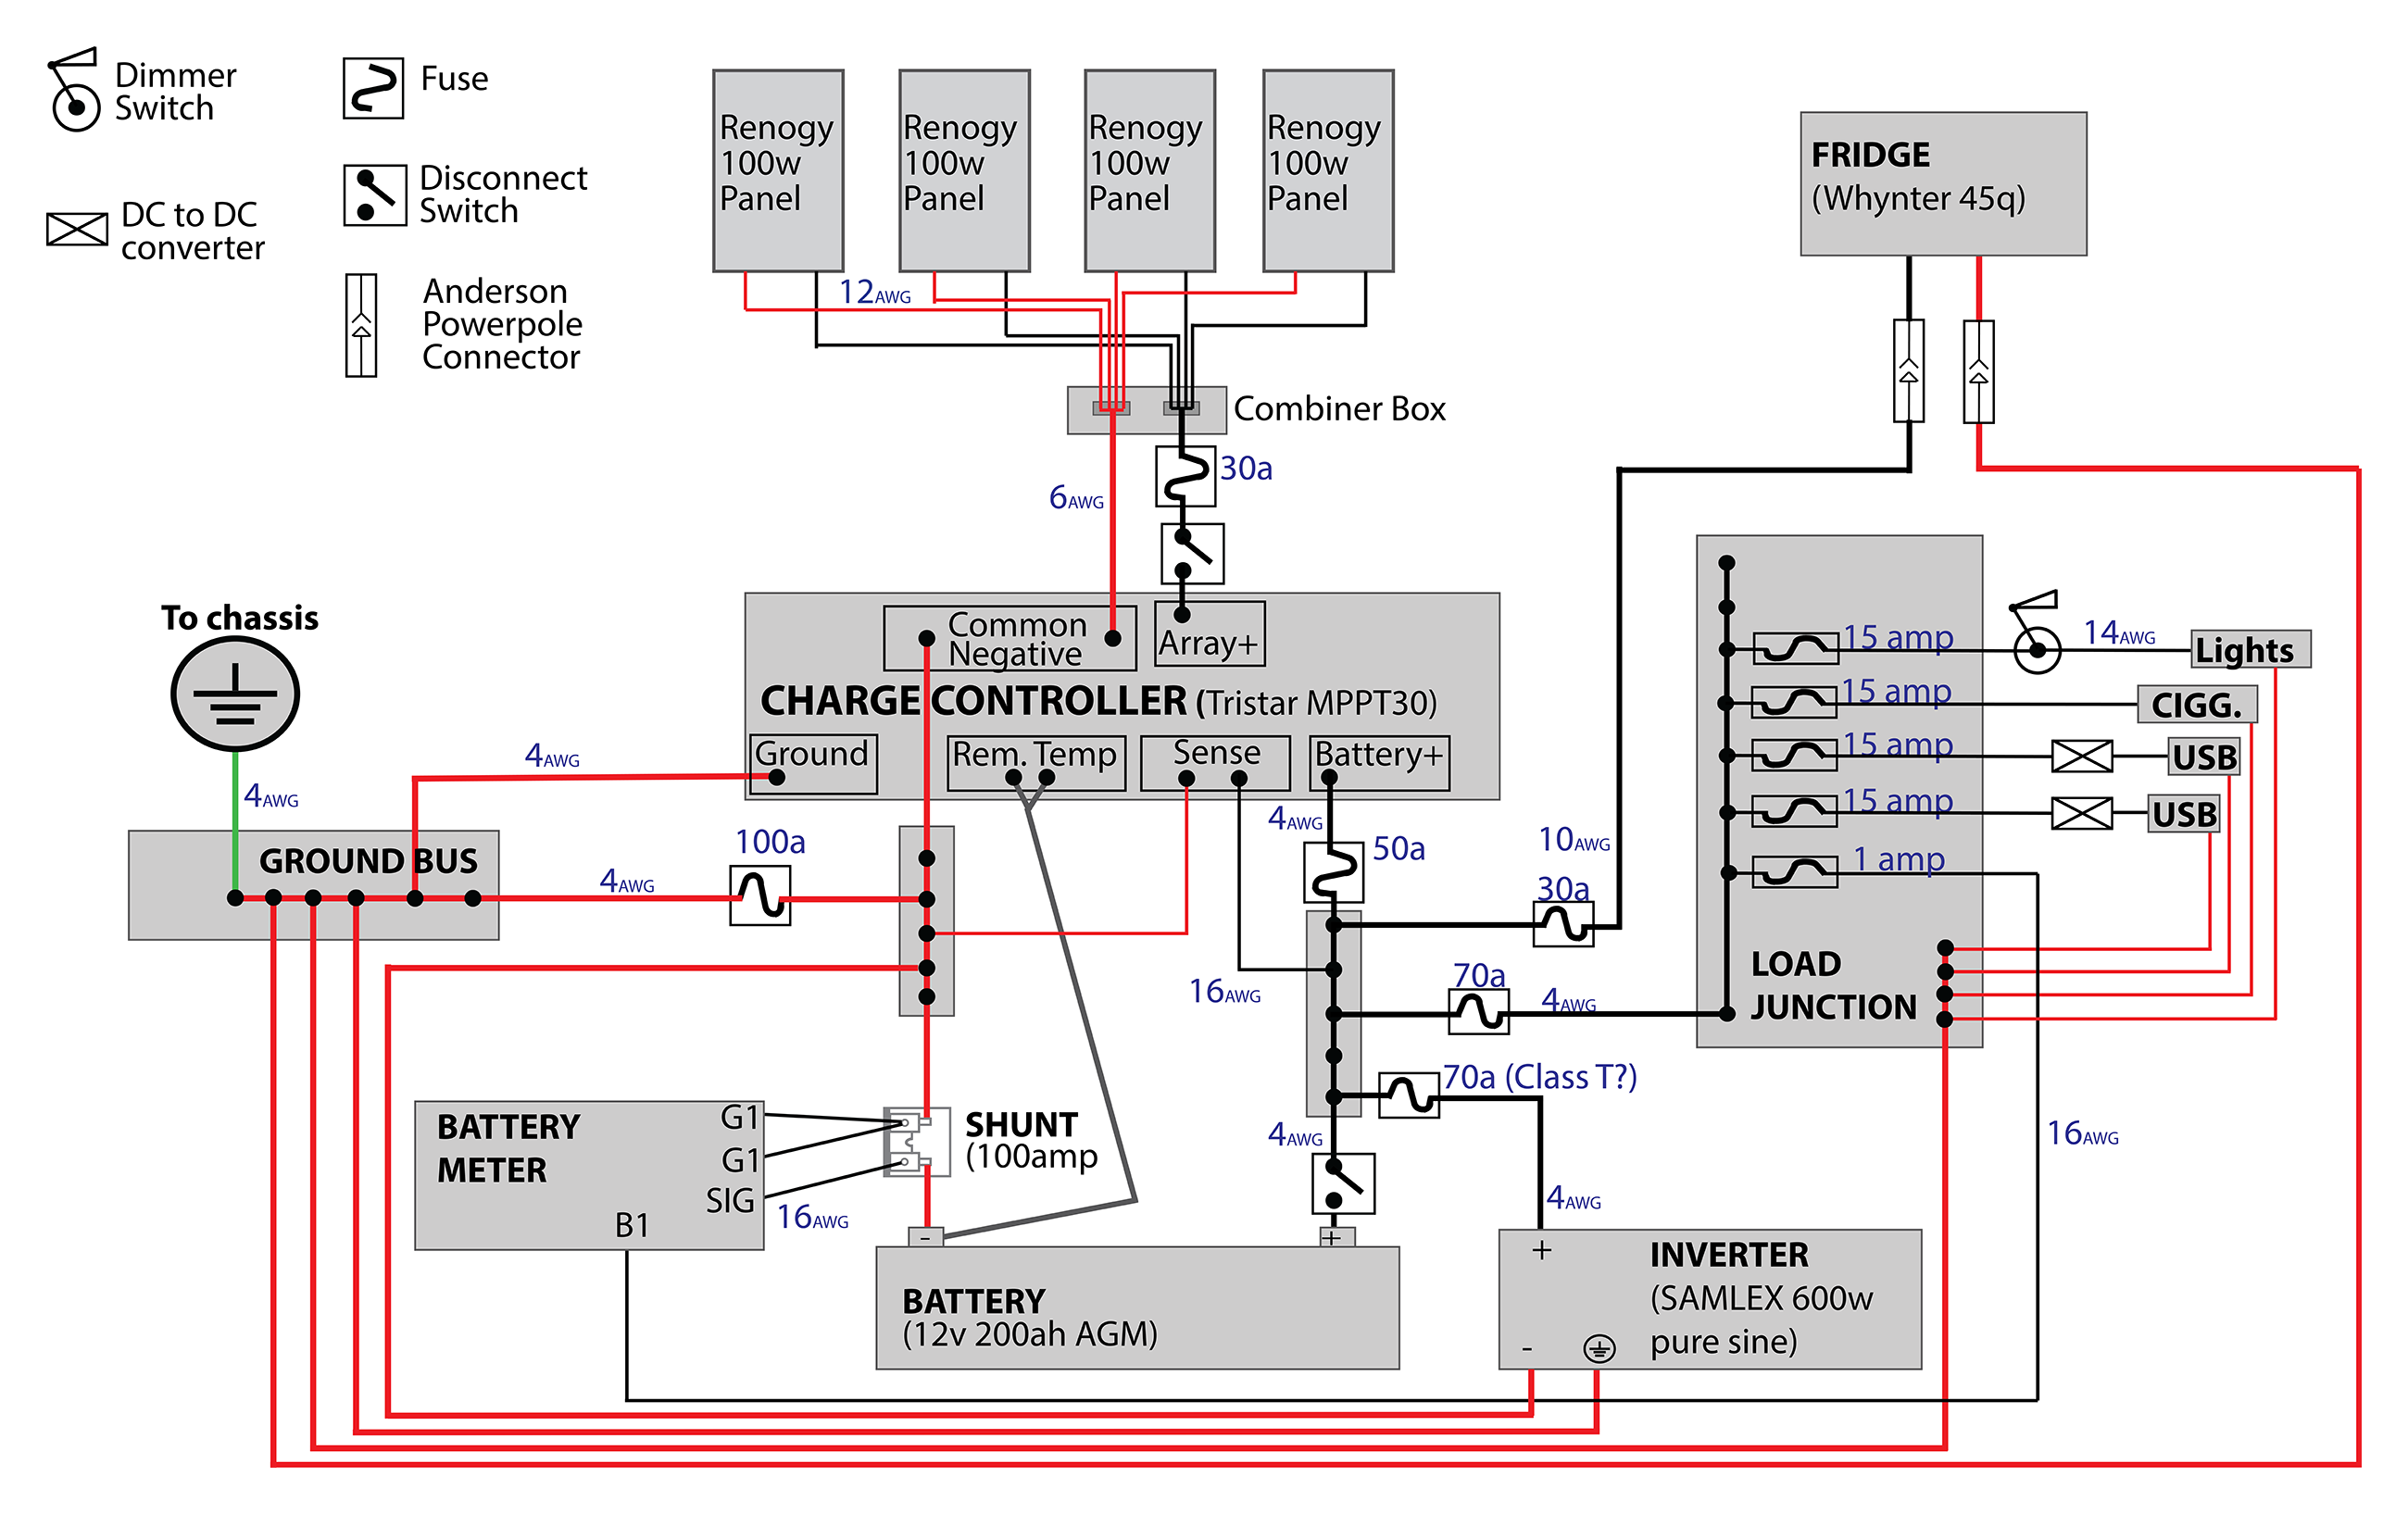 Here is the wiring diagram.